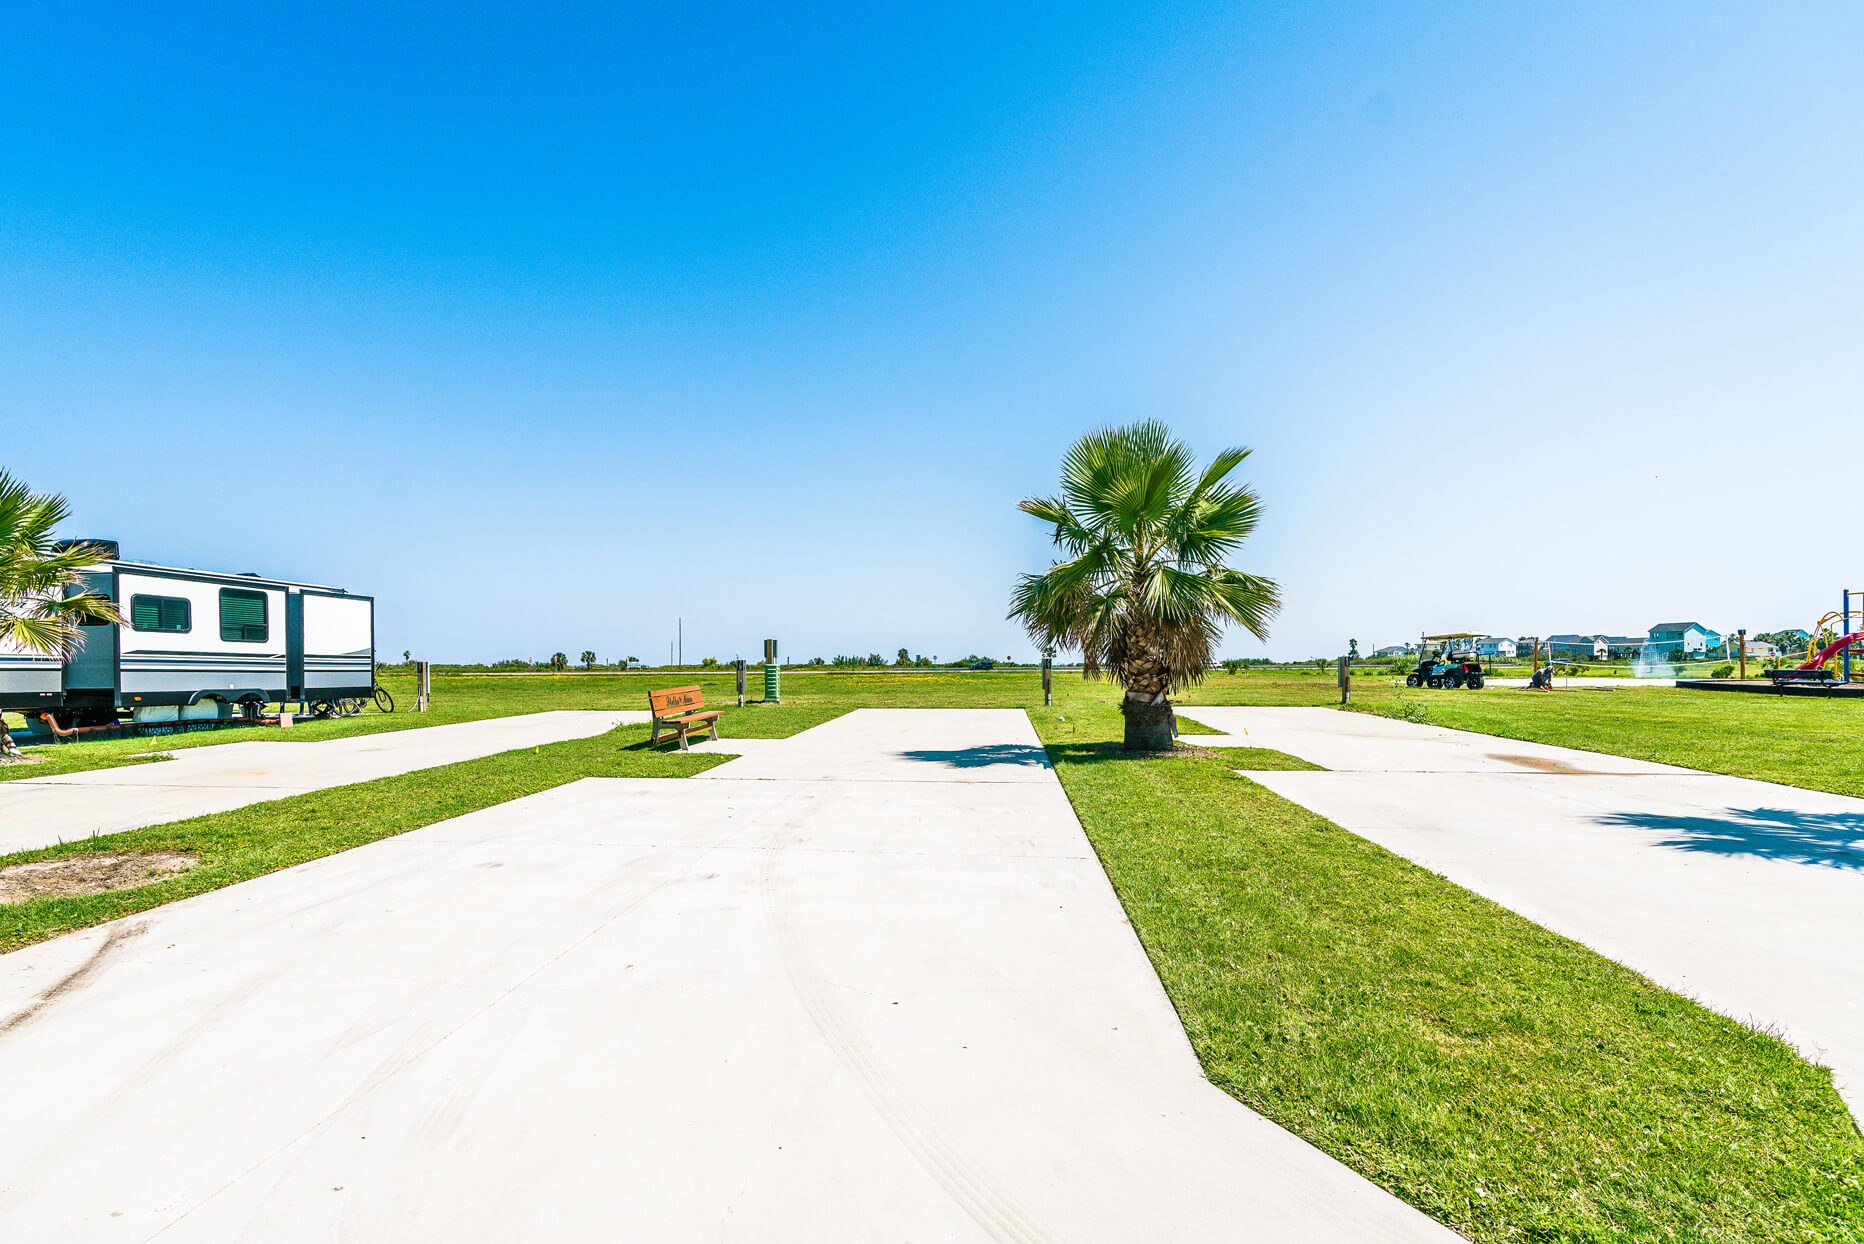 Open Galveston RV park site at Stella Mare RV Resort